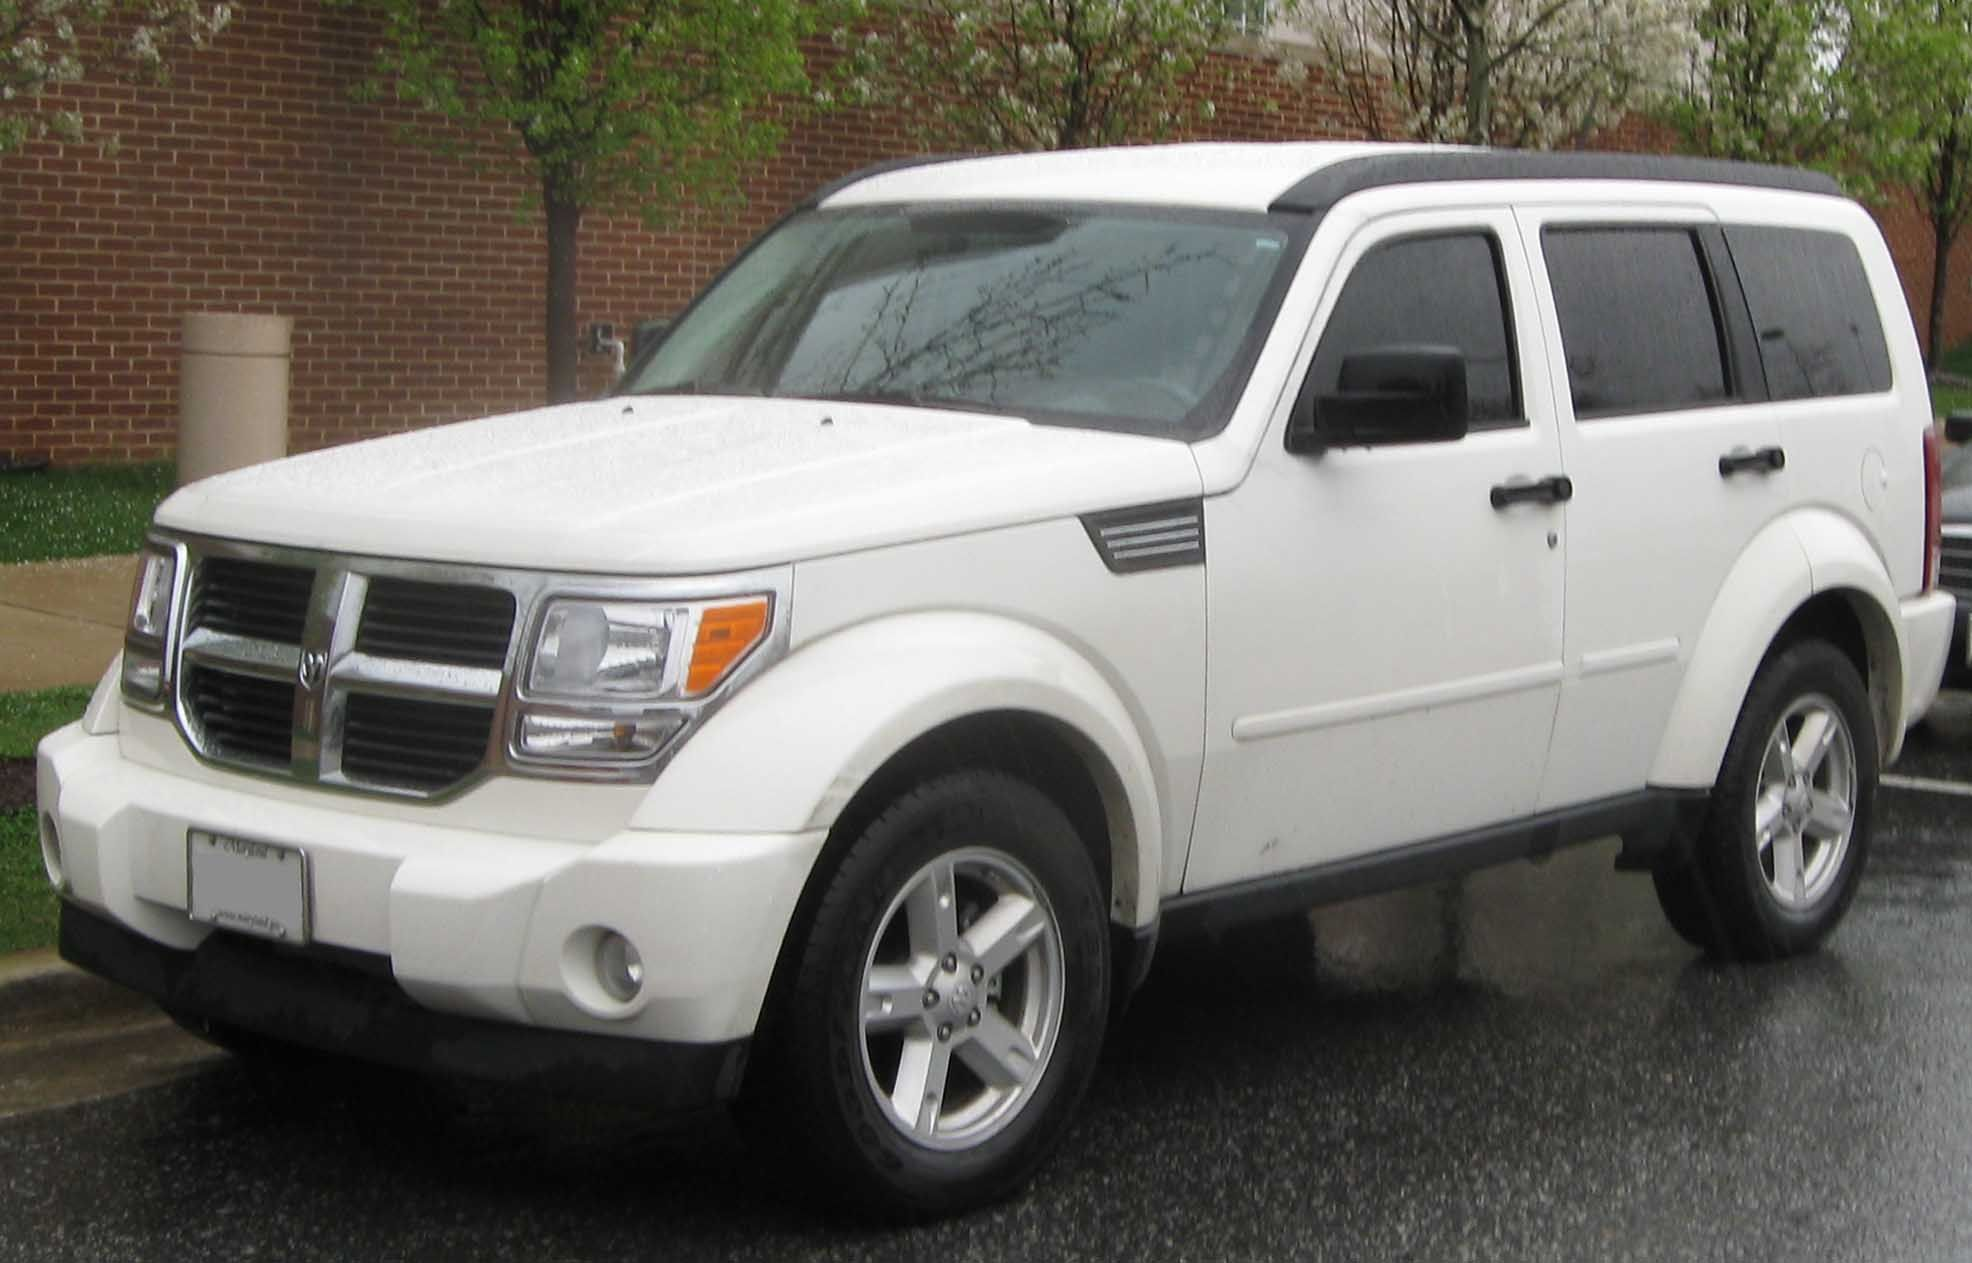 2008 Dodge Nitro Mine Was Impact Orange And Had Nicer Wheels